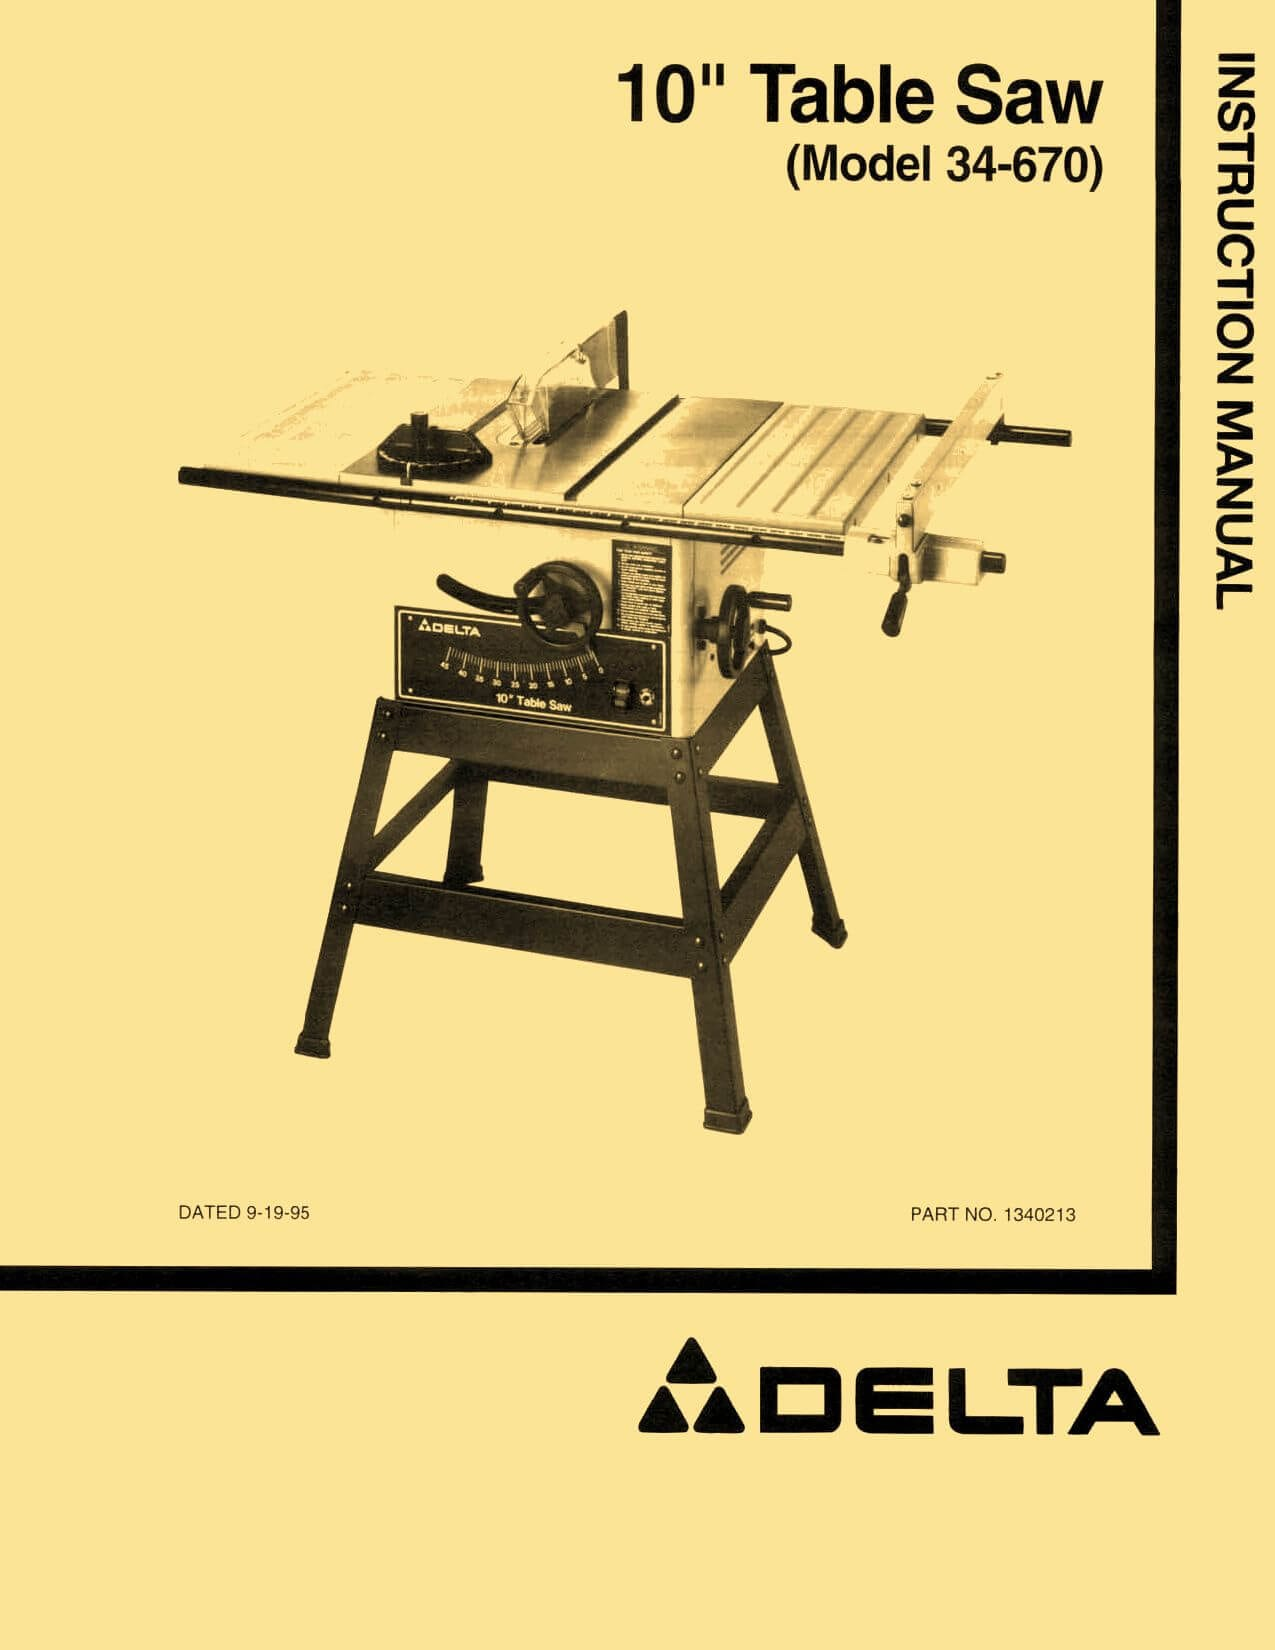 Delta 34 670 10 motorized table saw instructions parts manual delta 34 670 10 motorized table saw instructions parts manual greentooth